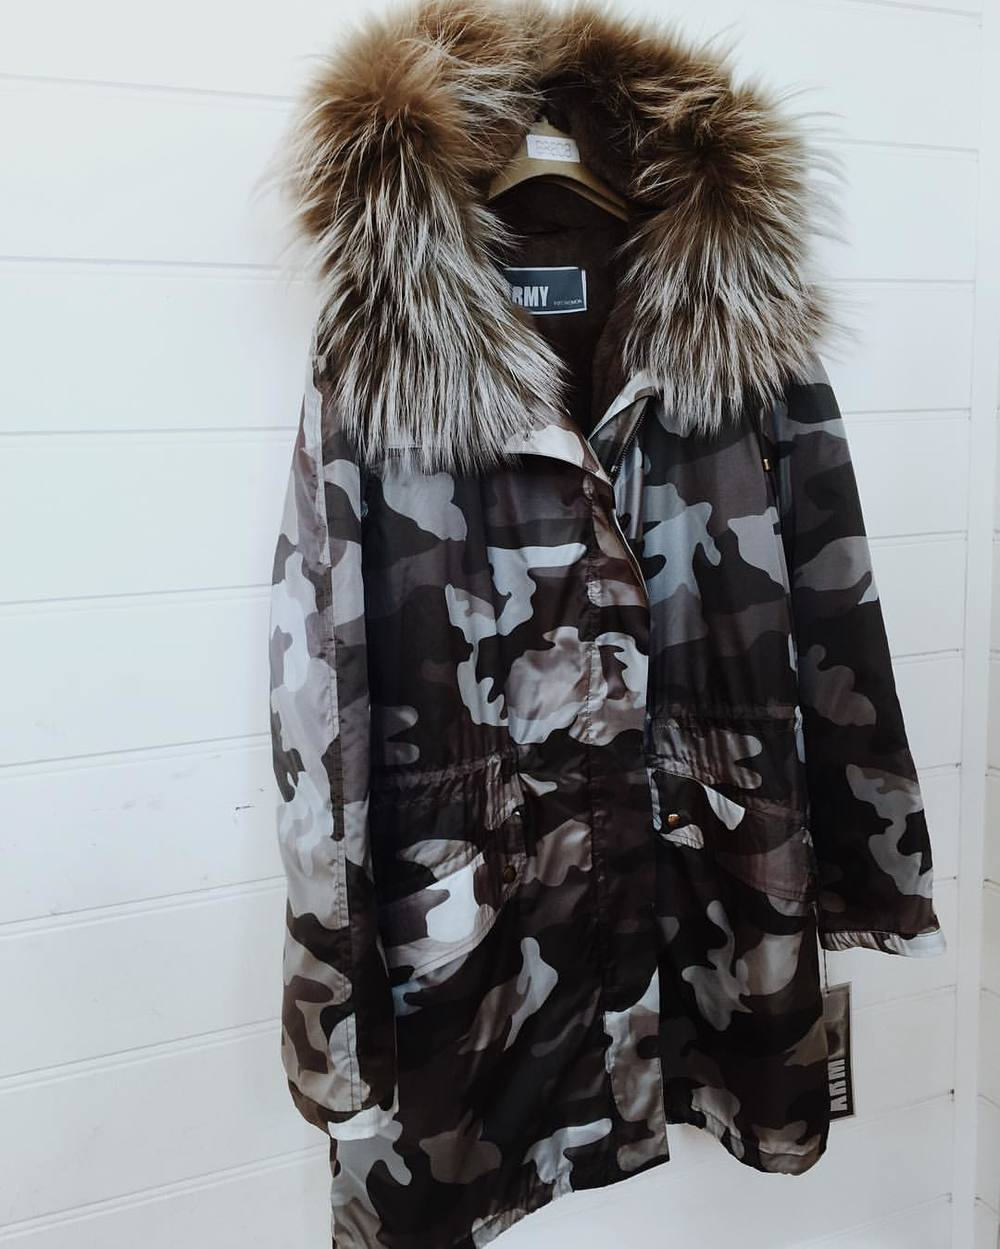 Rainy Autumn days call for new season Army by @yves_salomon 🍁😍 #camo #love #parka #yvessalomon (at GRACE boutique)